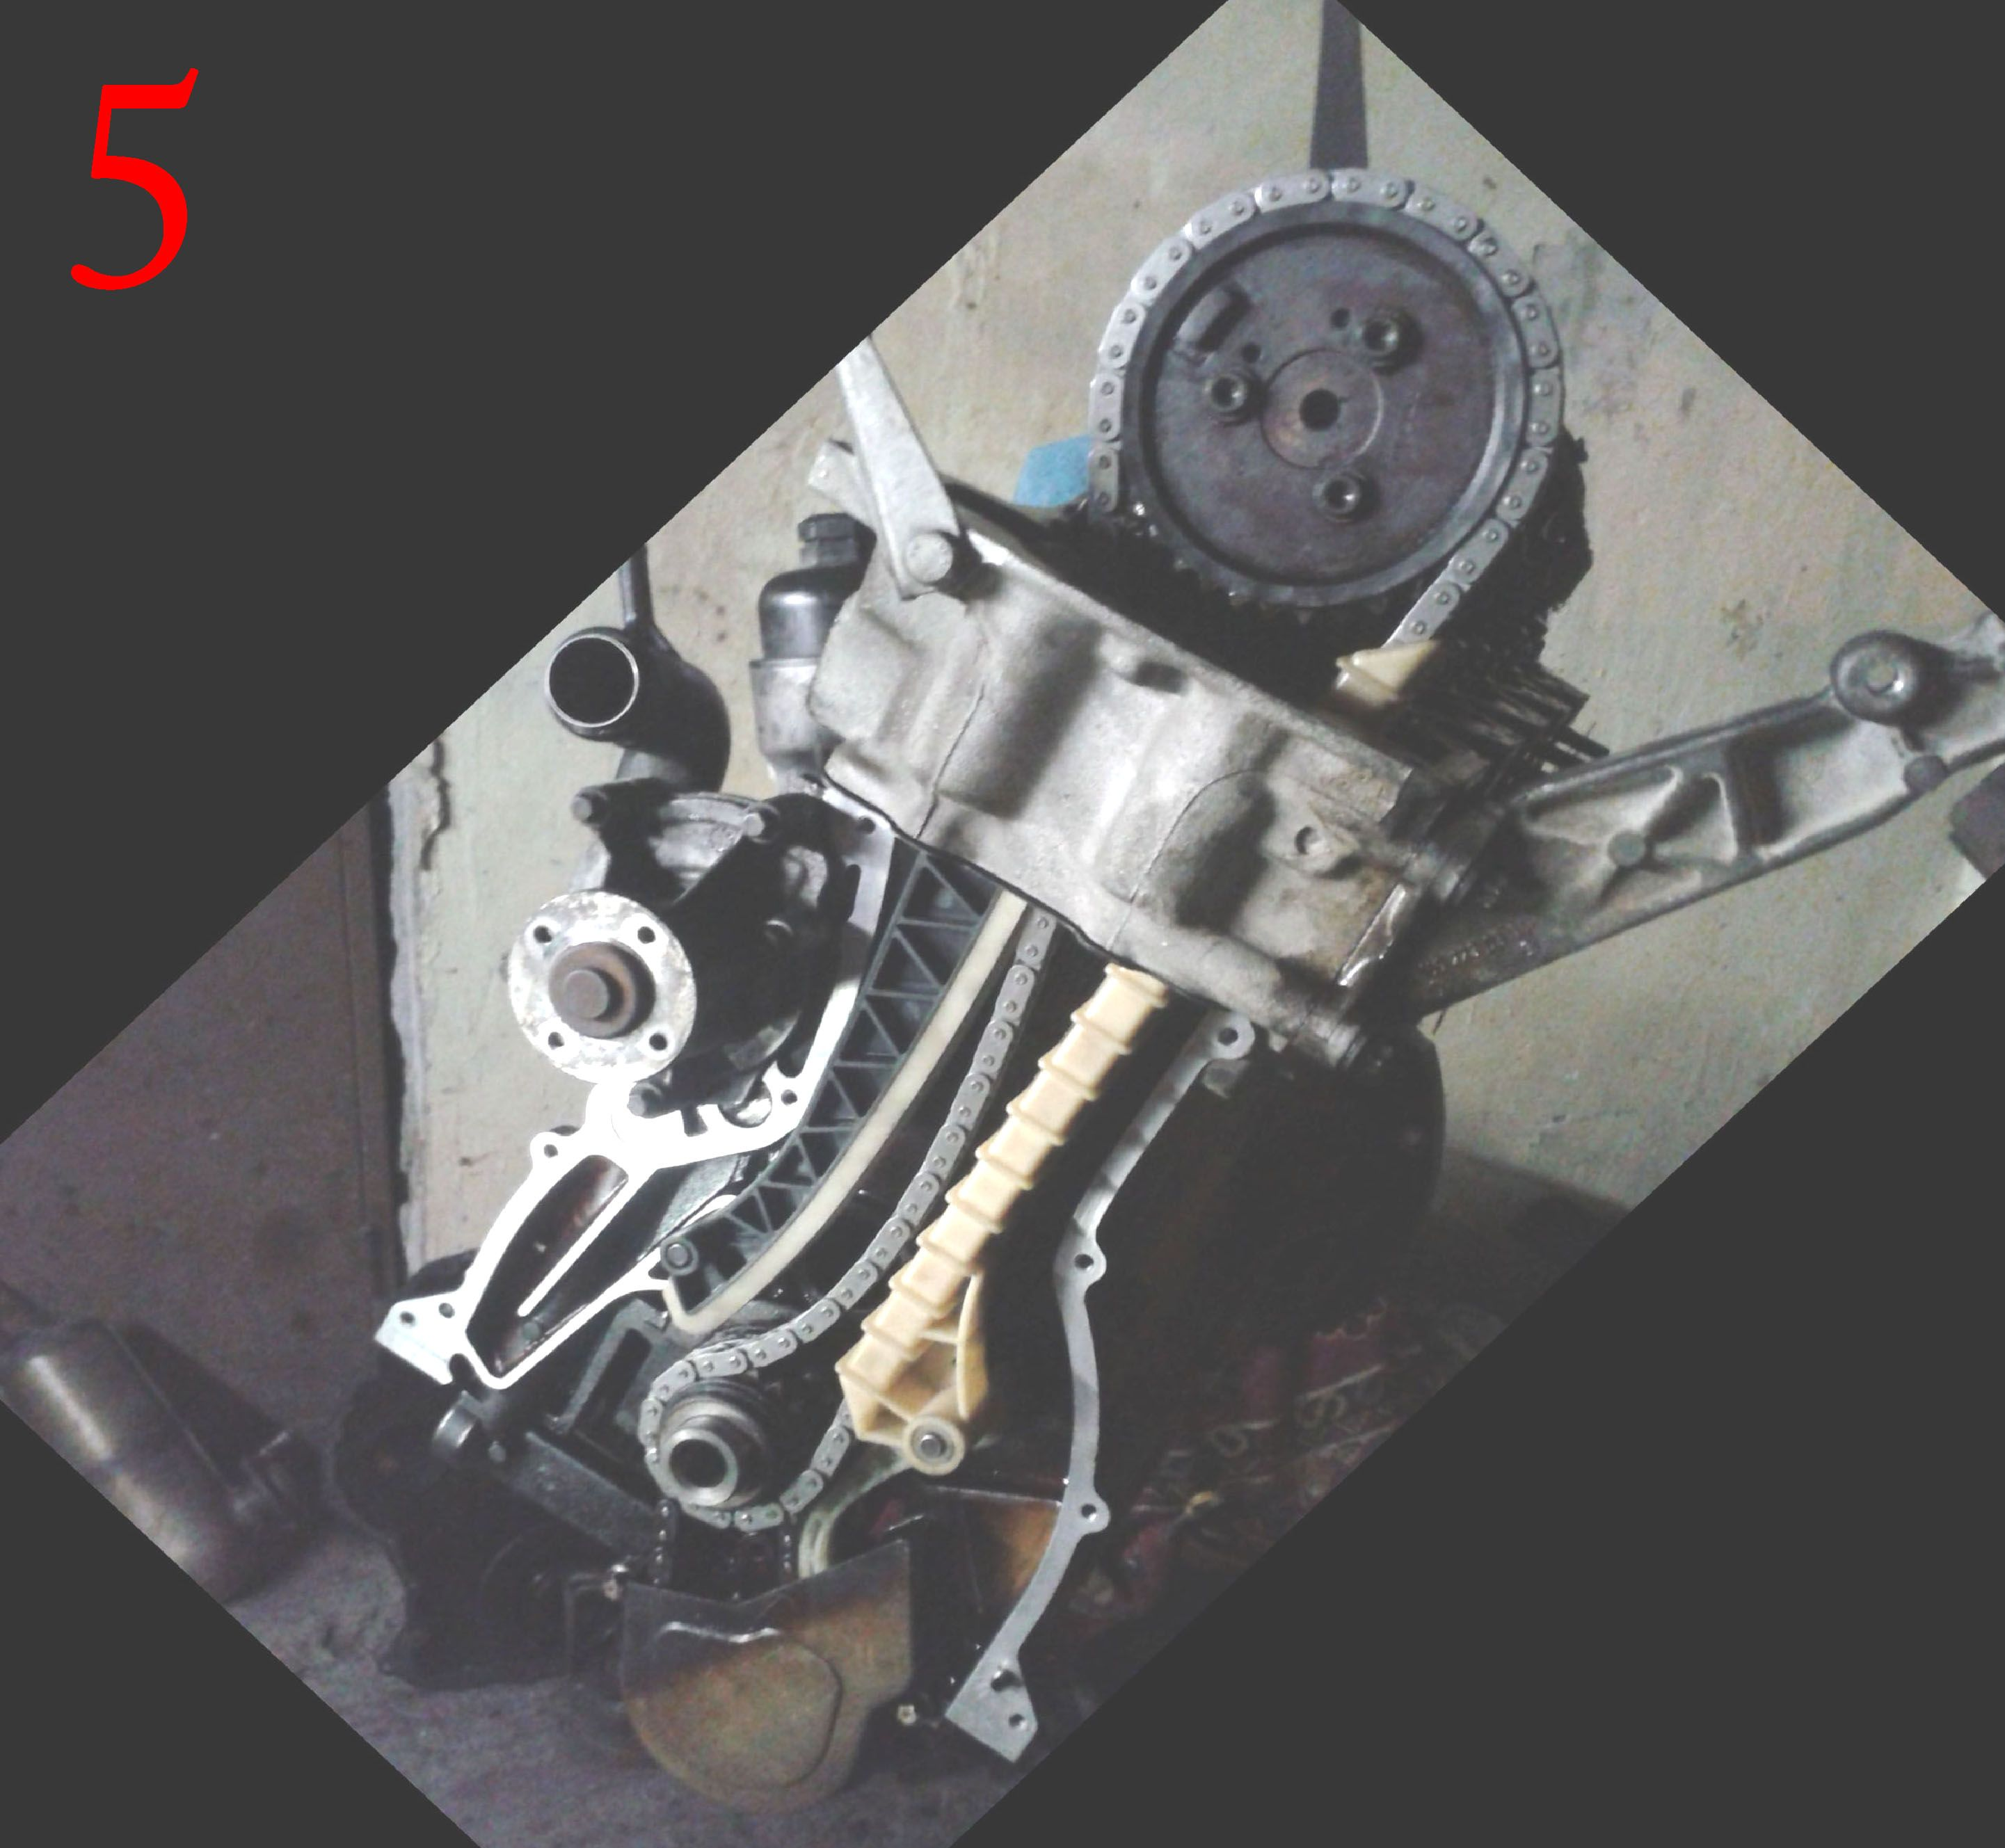 In photo's 4 and 5 you can see the engine with the new timing chain and new  chain guides installed.